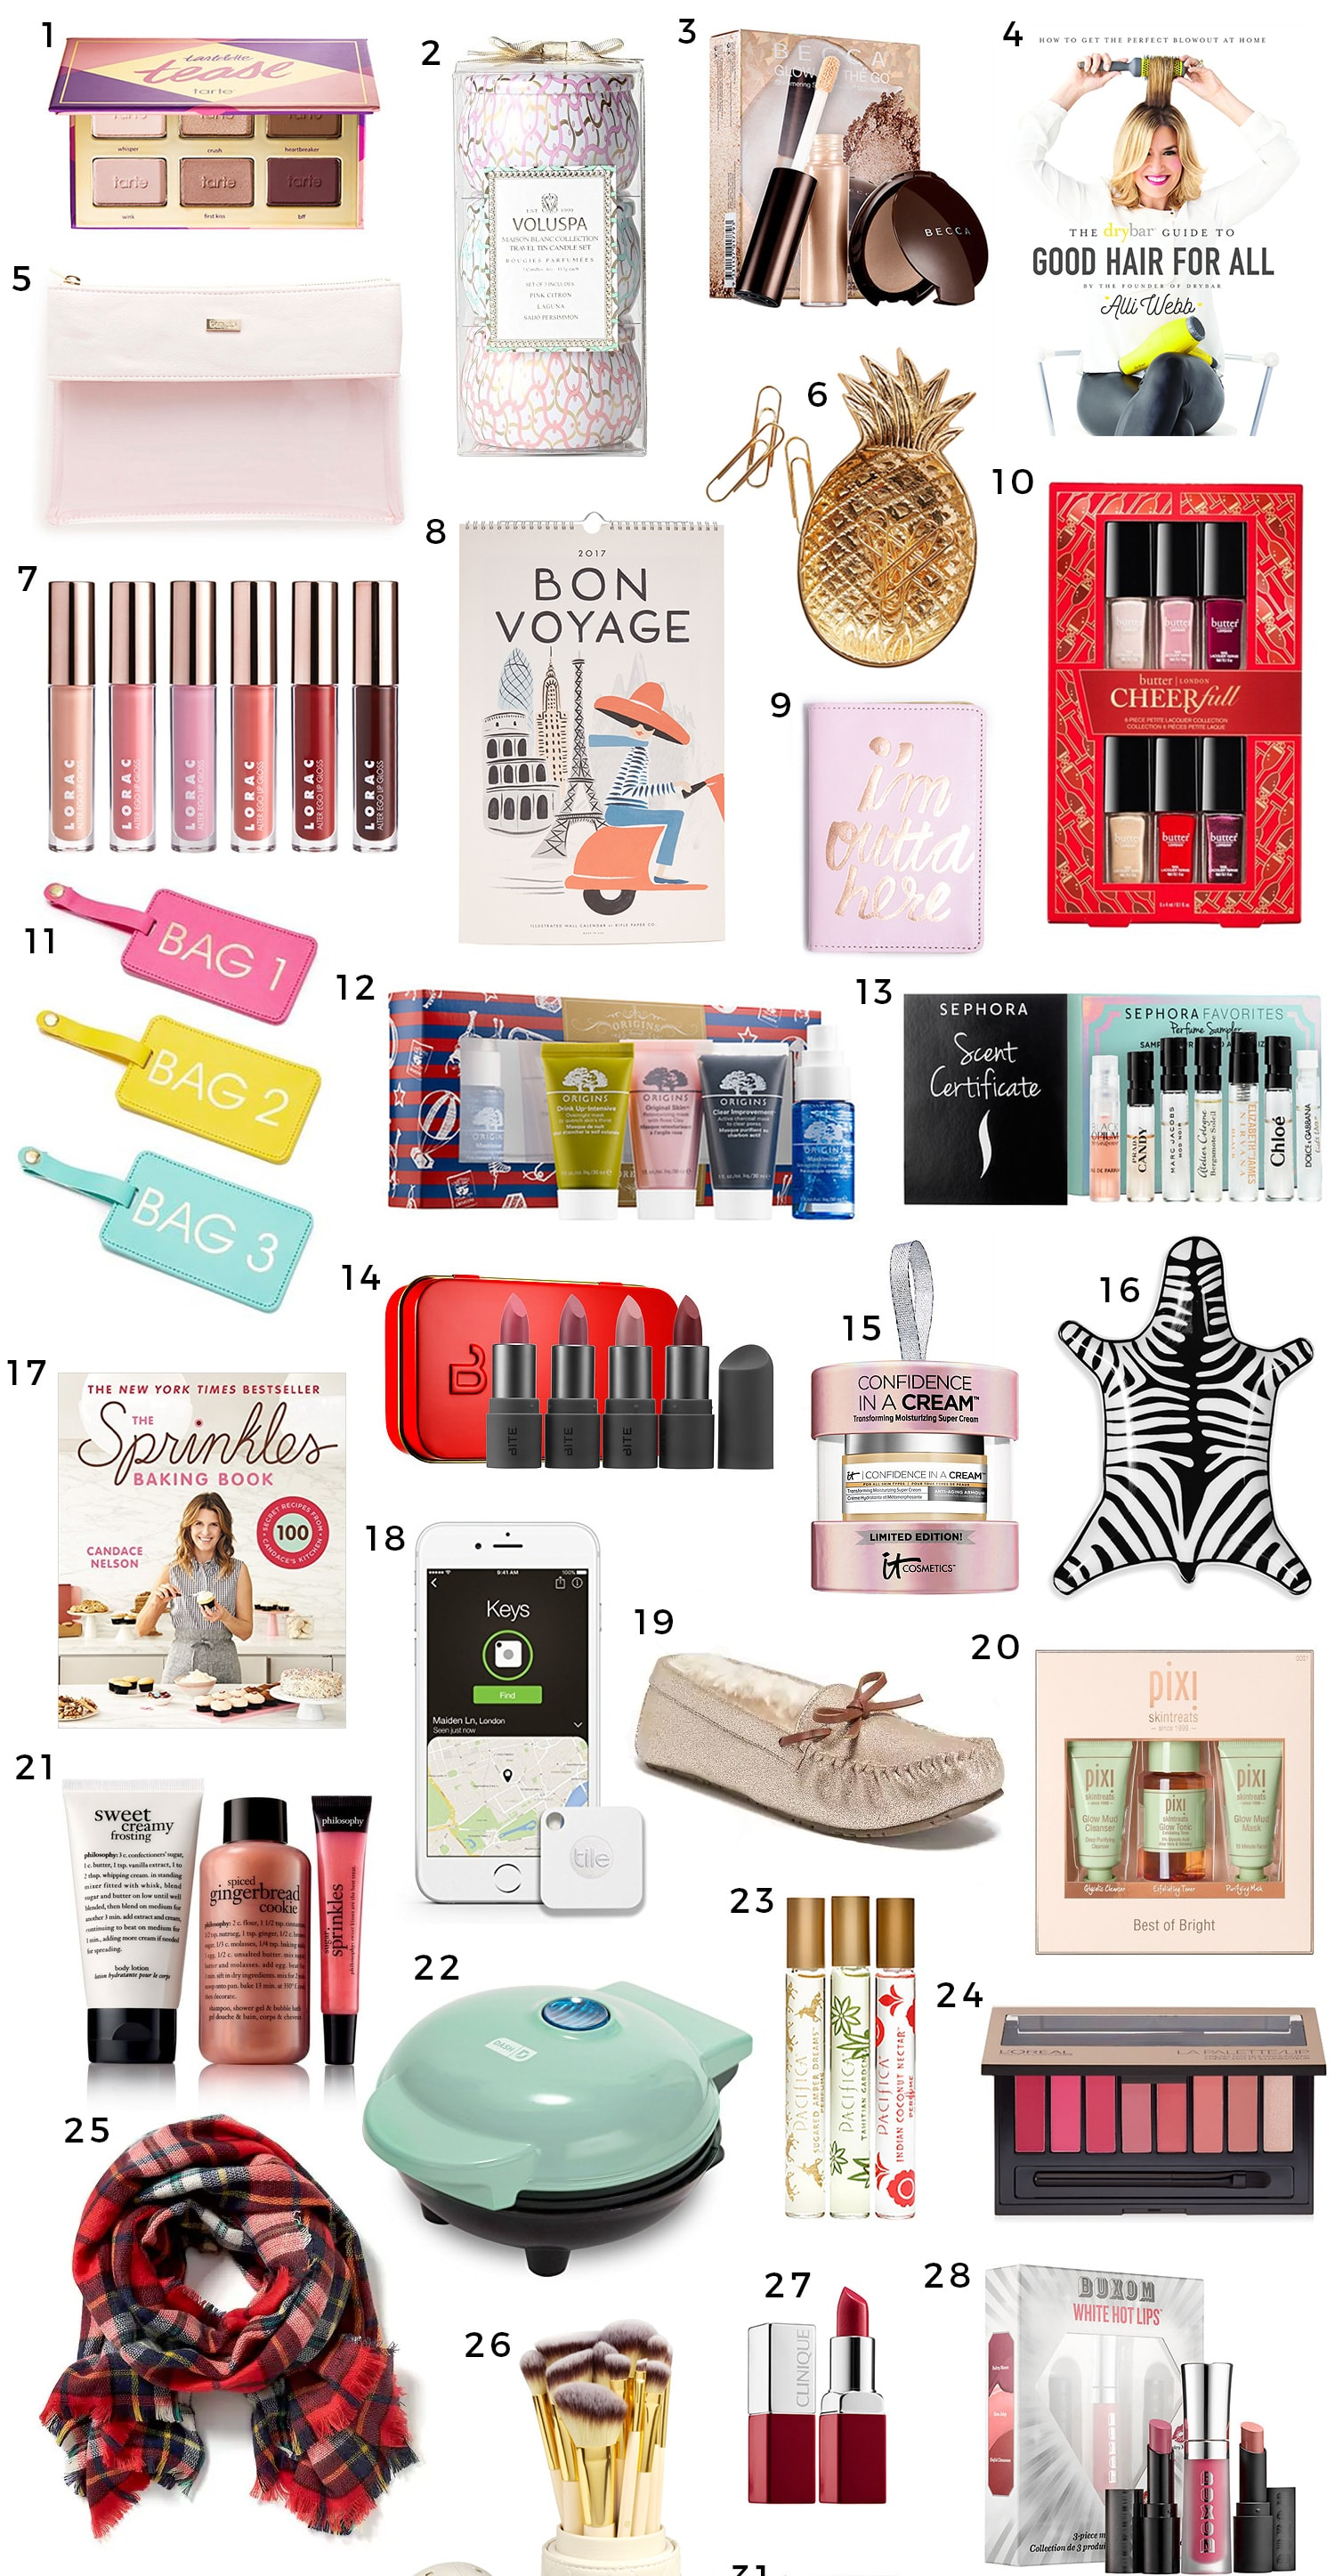 Best Gift Ideas For 13 Year Old Girls: The Best Christmas Gift Ideas For Women Under $25